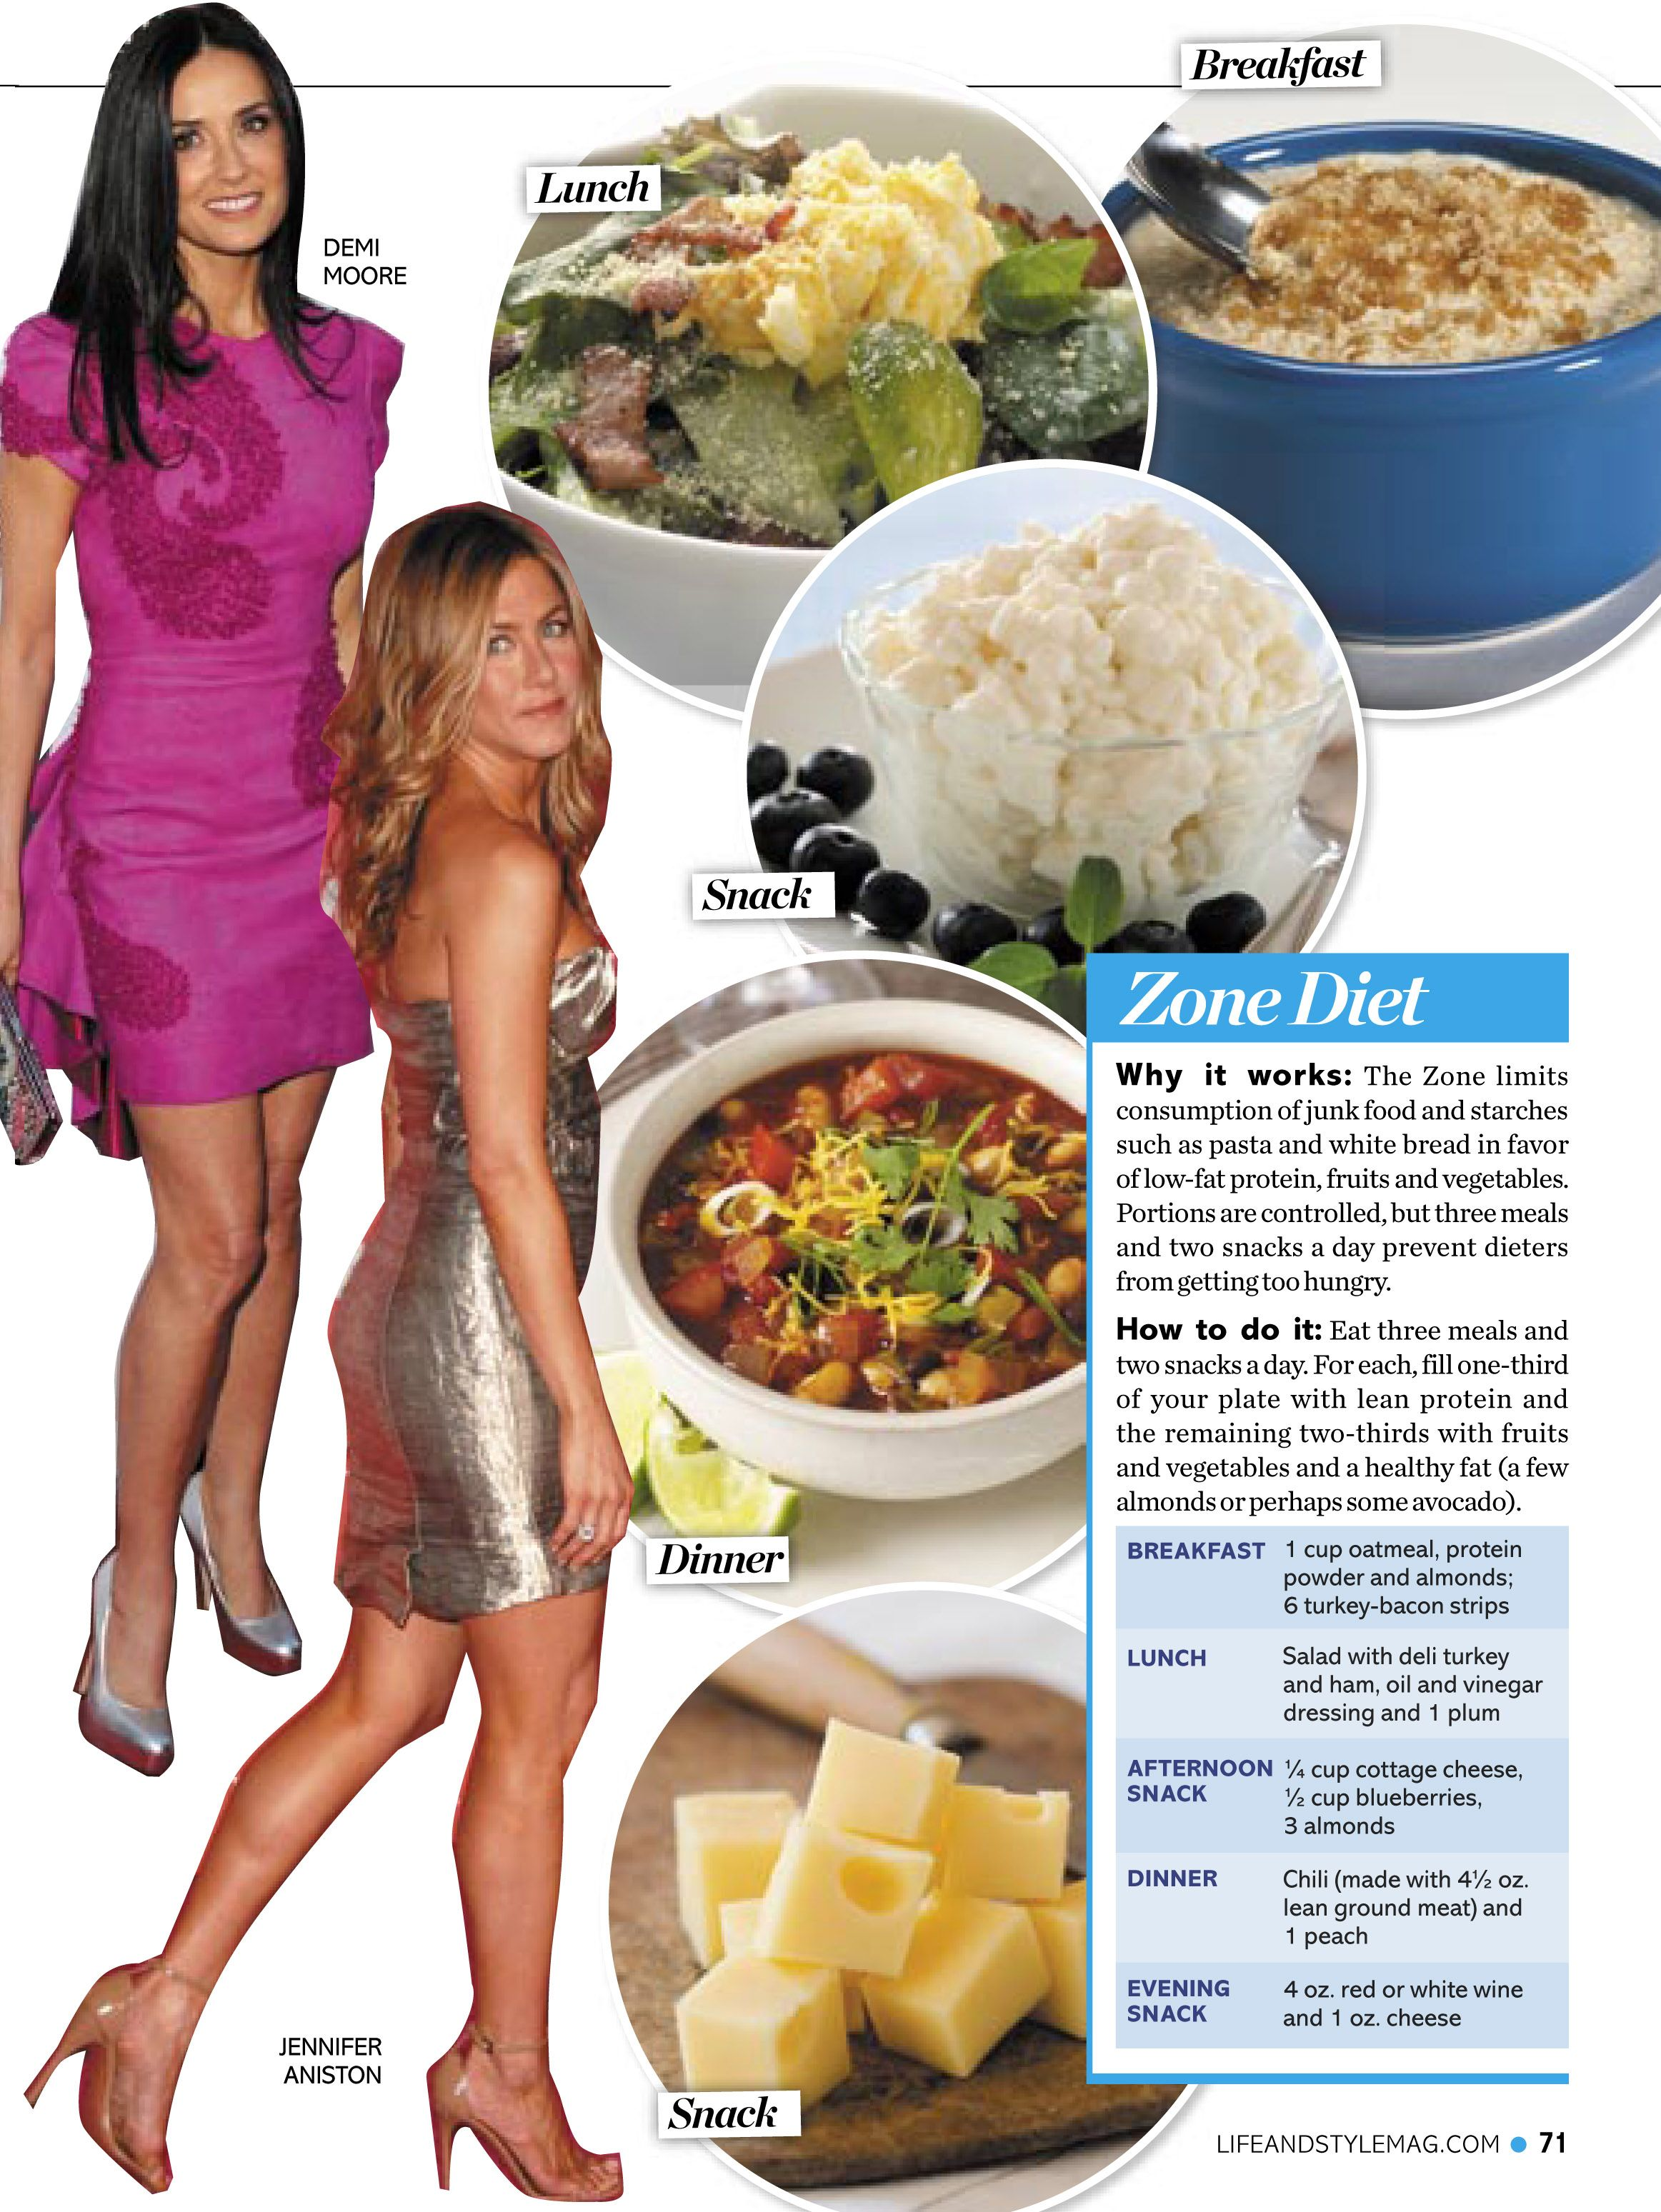 The Mostmon And Effective Movie Star Diet Plans For Losing Weight Fast  Includes Which Celebs Have Performed Specific Diet Plans To Shed Pounds  Quickly